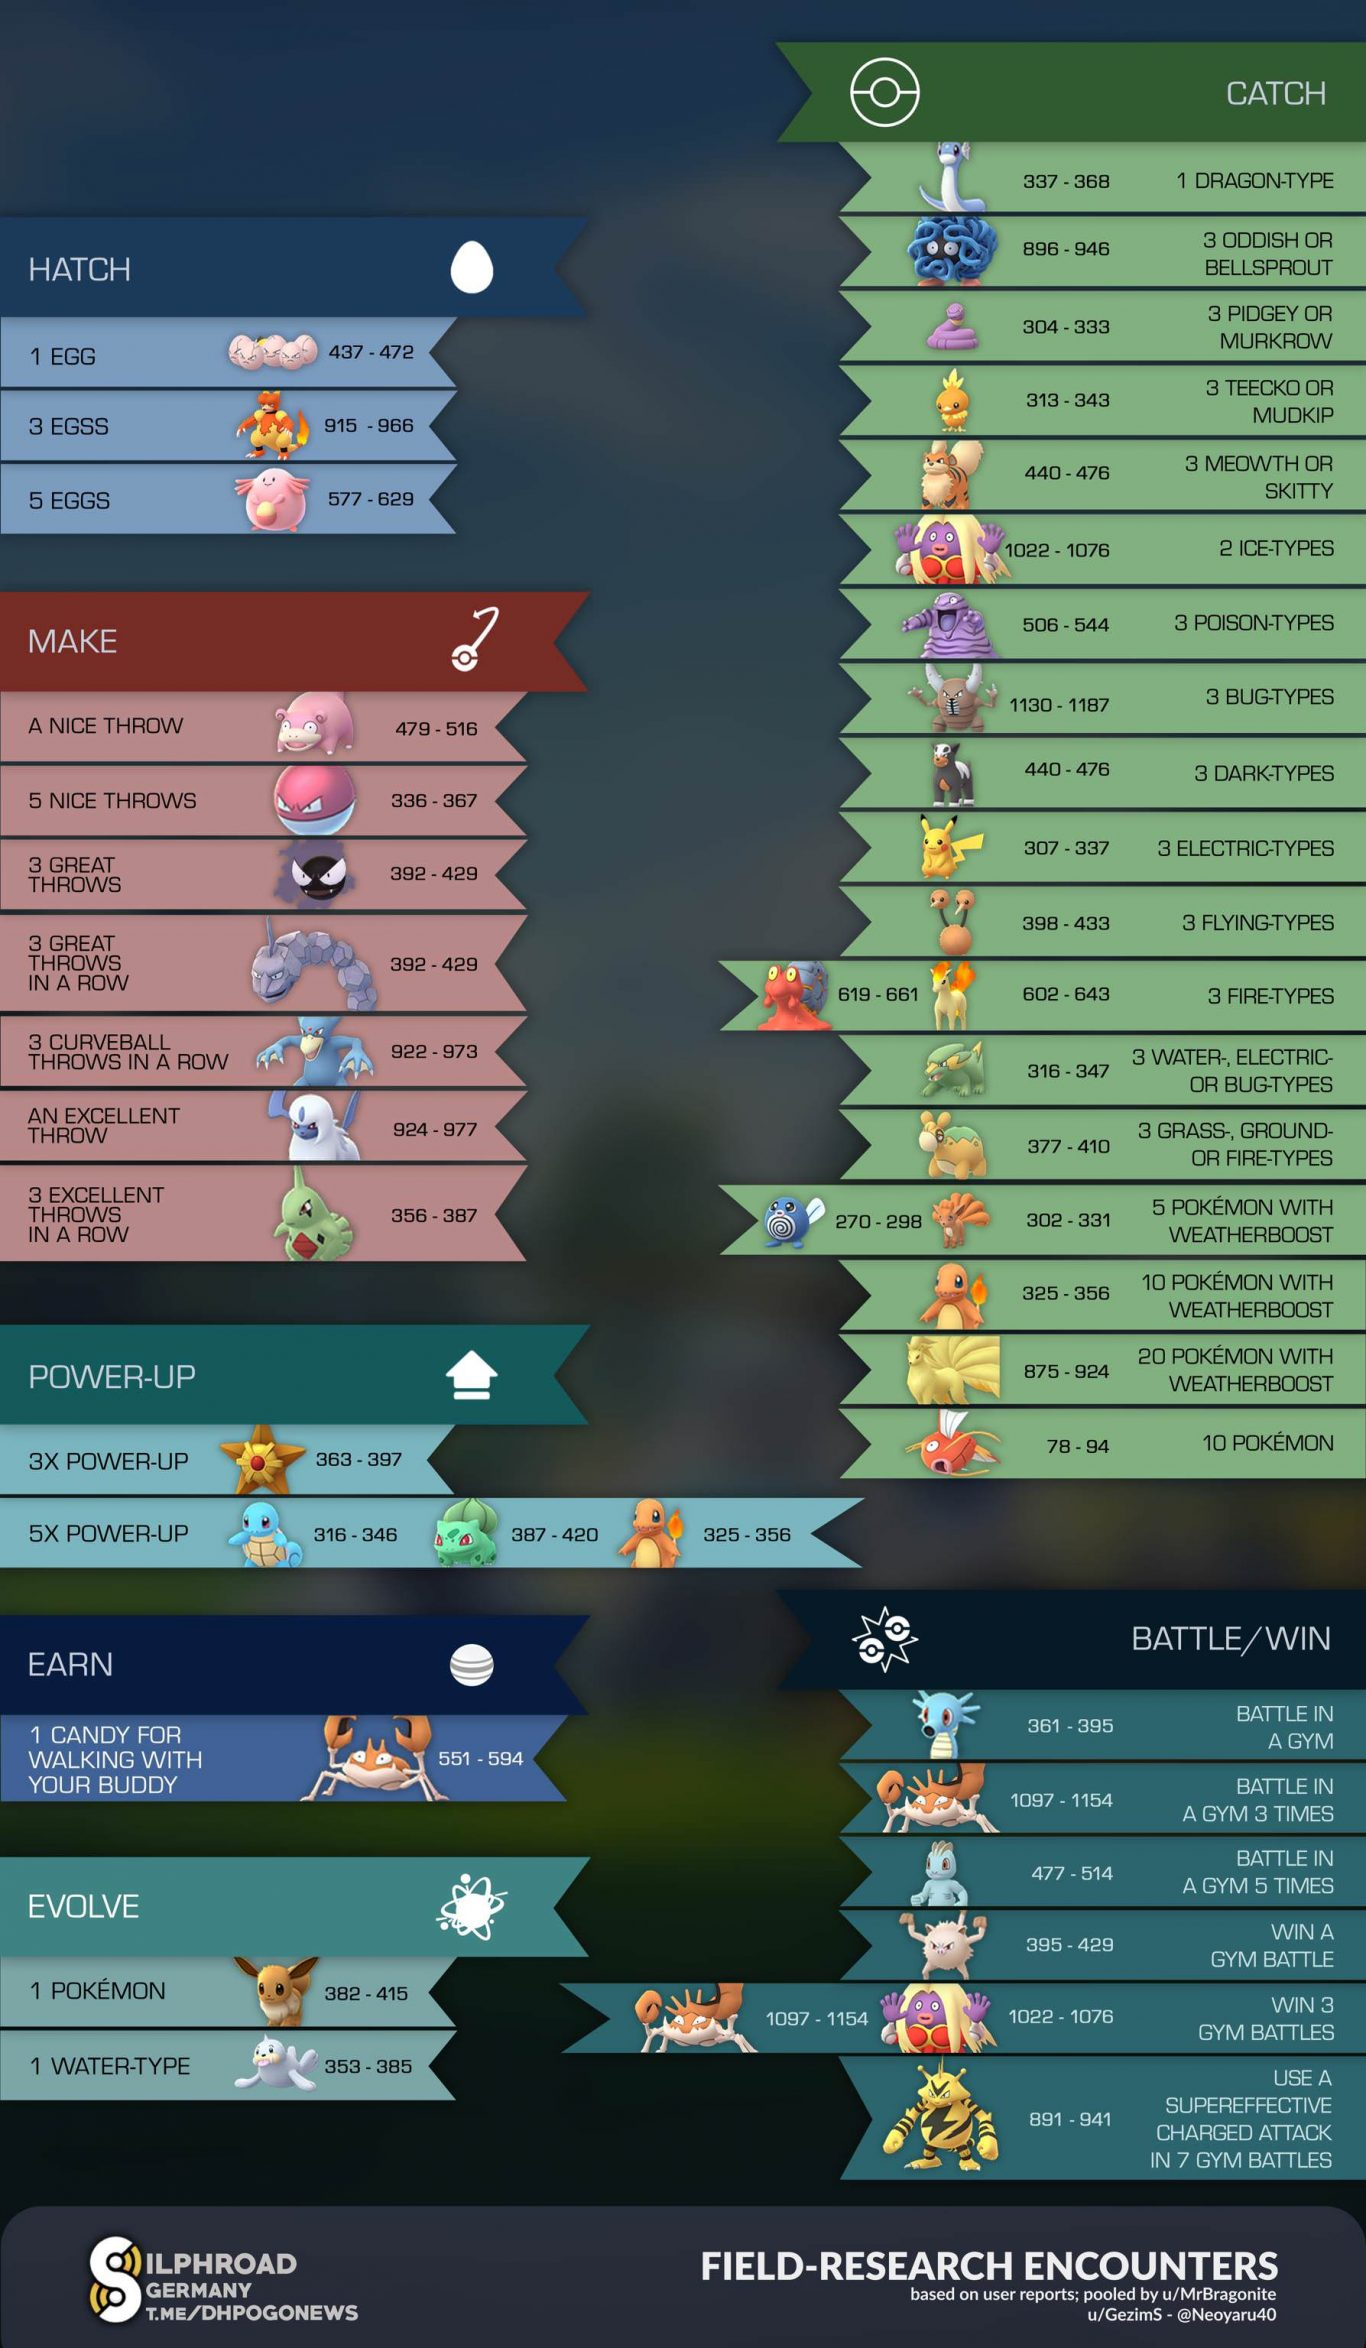 pokemon-go-research-encounters-june-1366x2348 Pokemon GO: Todas las Recompensas del Encuentro de Investigación de Campo para Junio - Noticias Pokémon GO